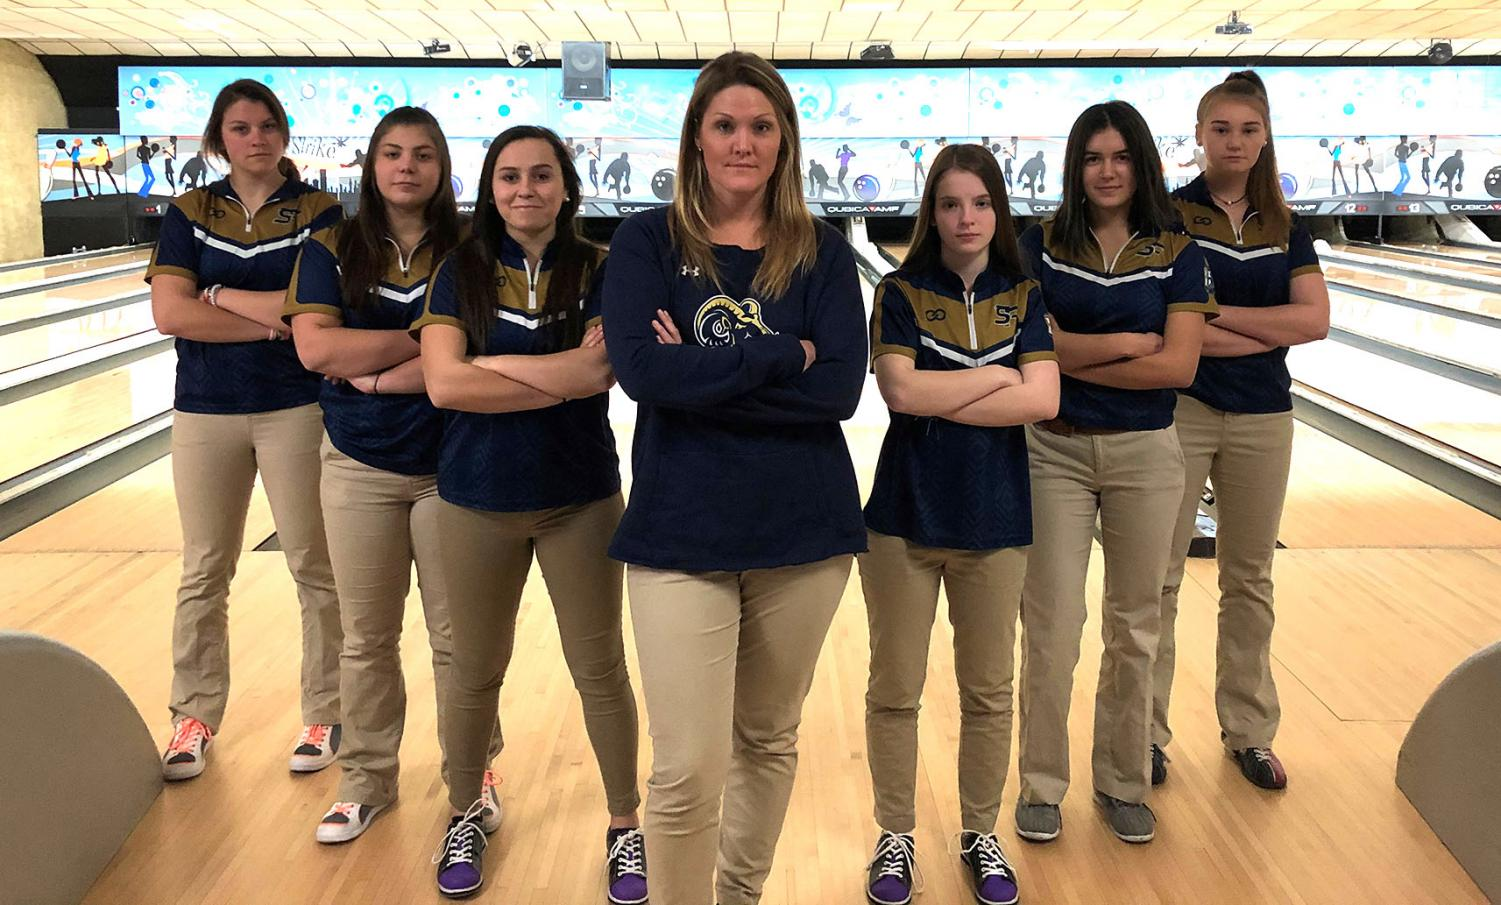 The Spring-Ford girls bowling team poses for photos during their inaugural season at Limerick Bowl. Pictured at center is coach Mallory Greene.